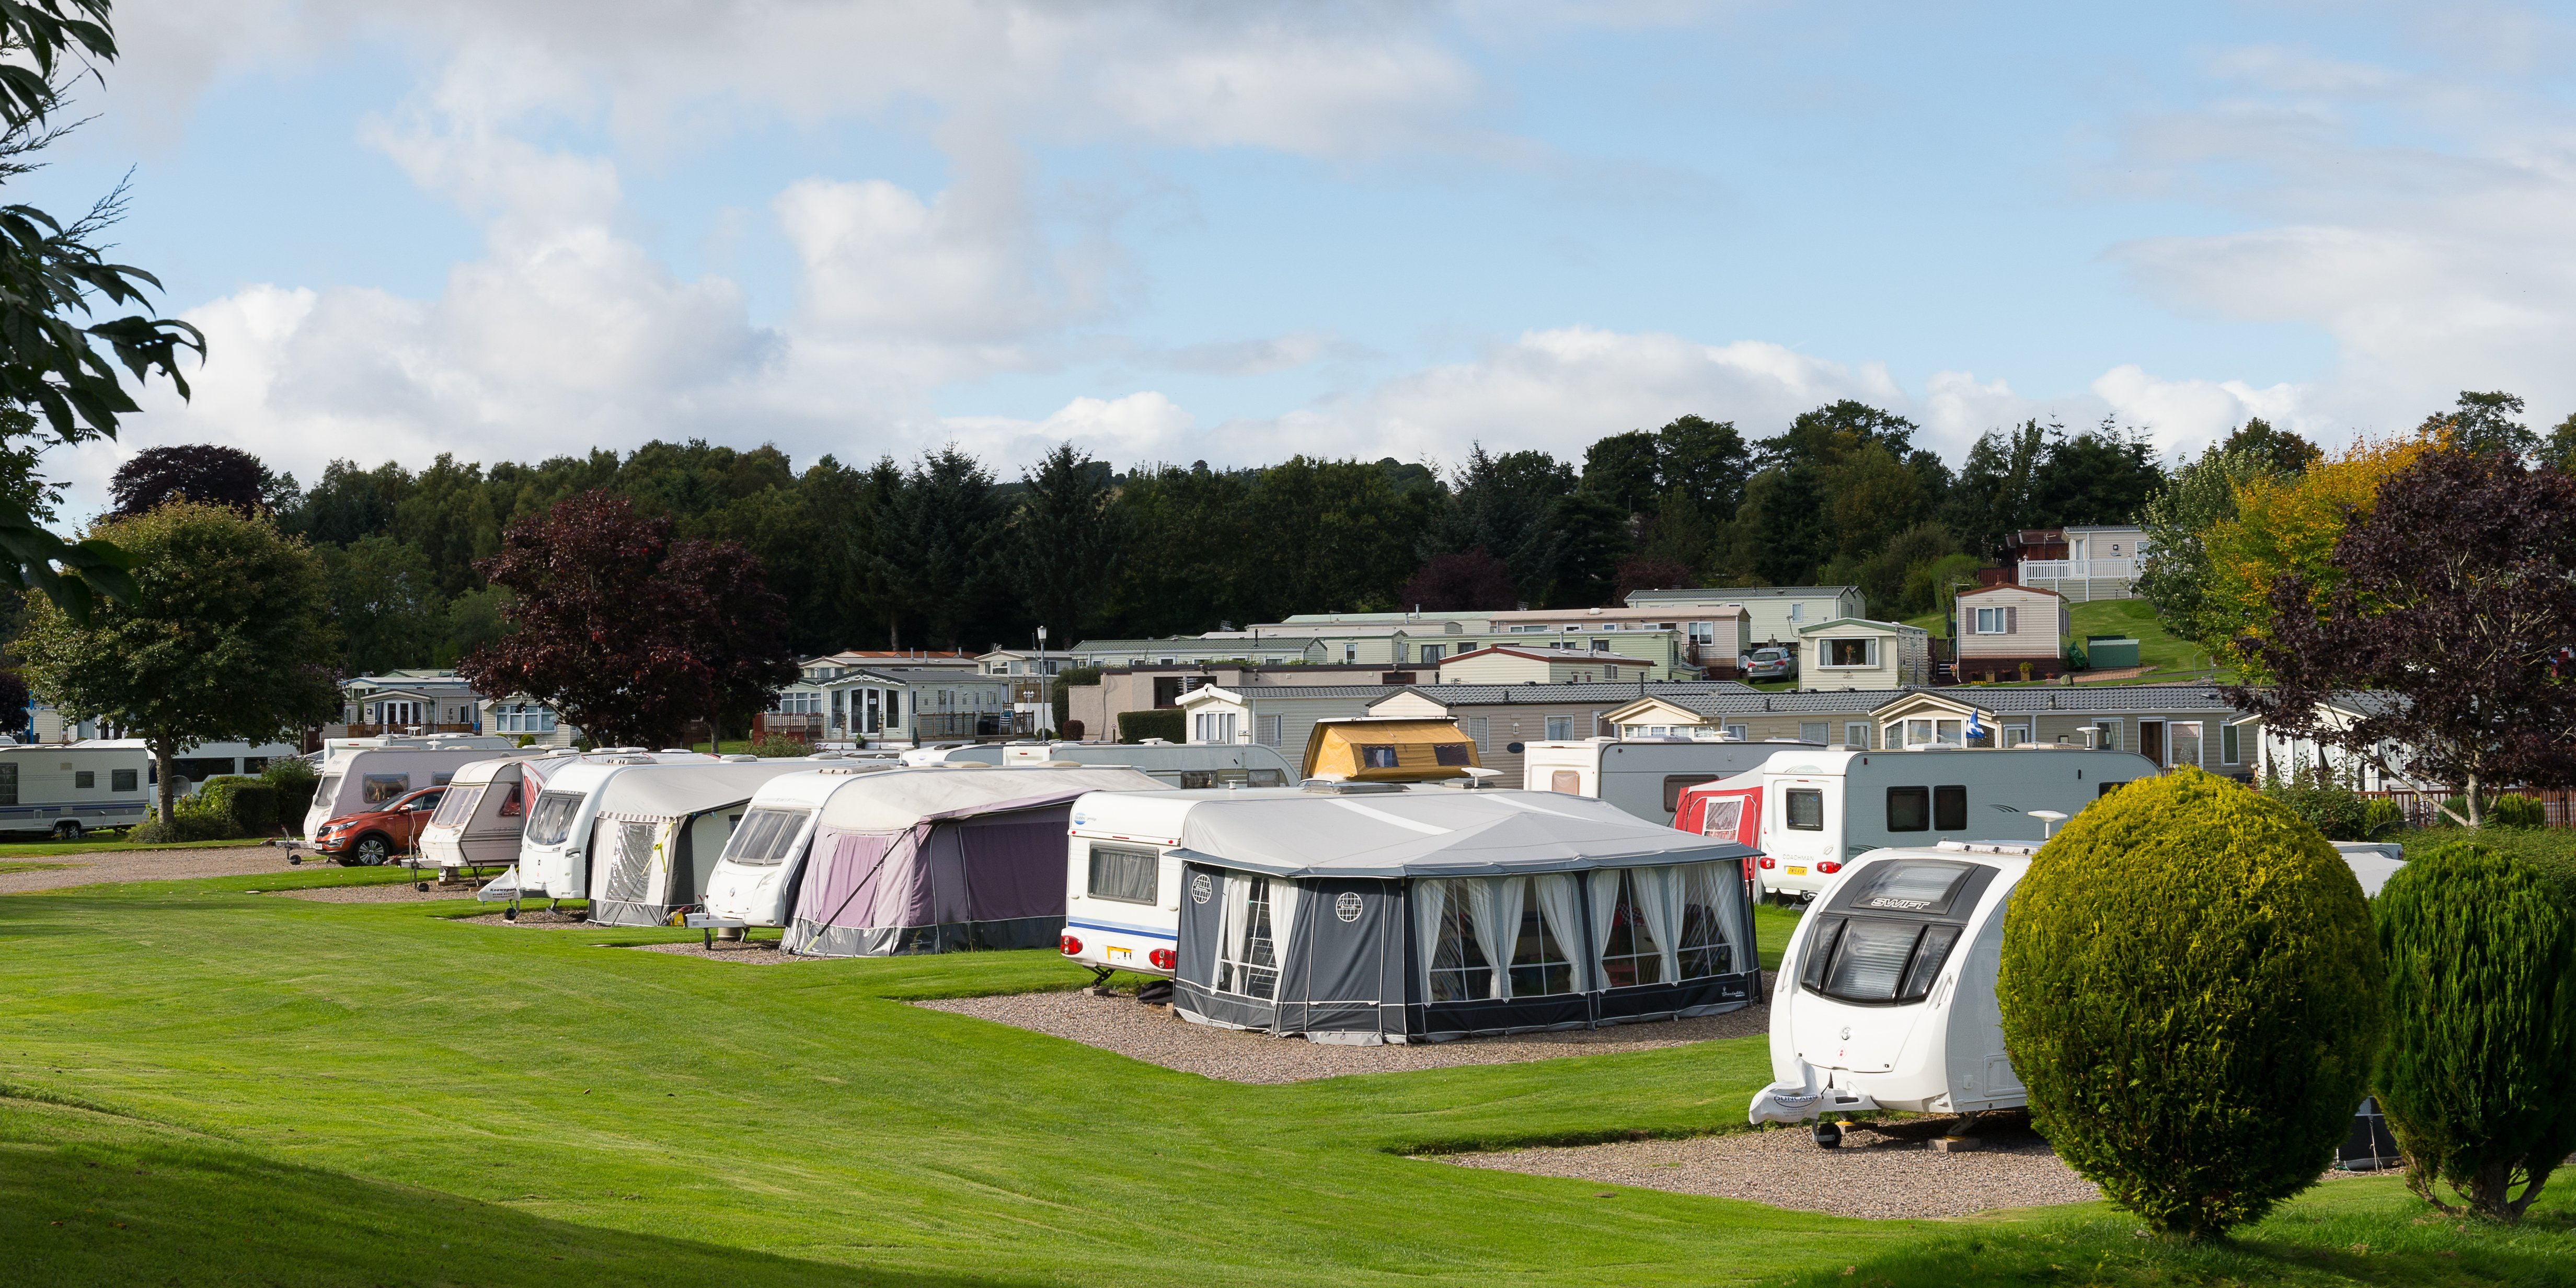 Blairgowrie Holiday Park, Blairgowrie, Perthshire | Head Outside